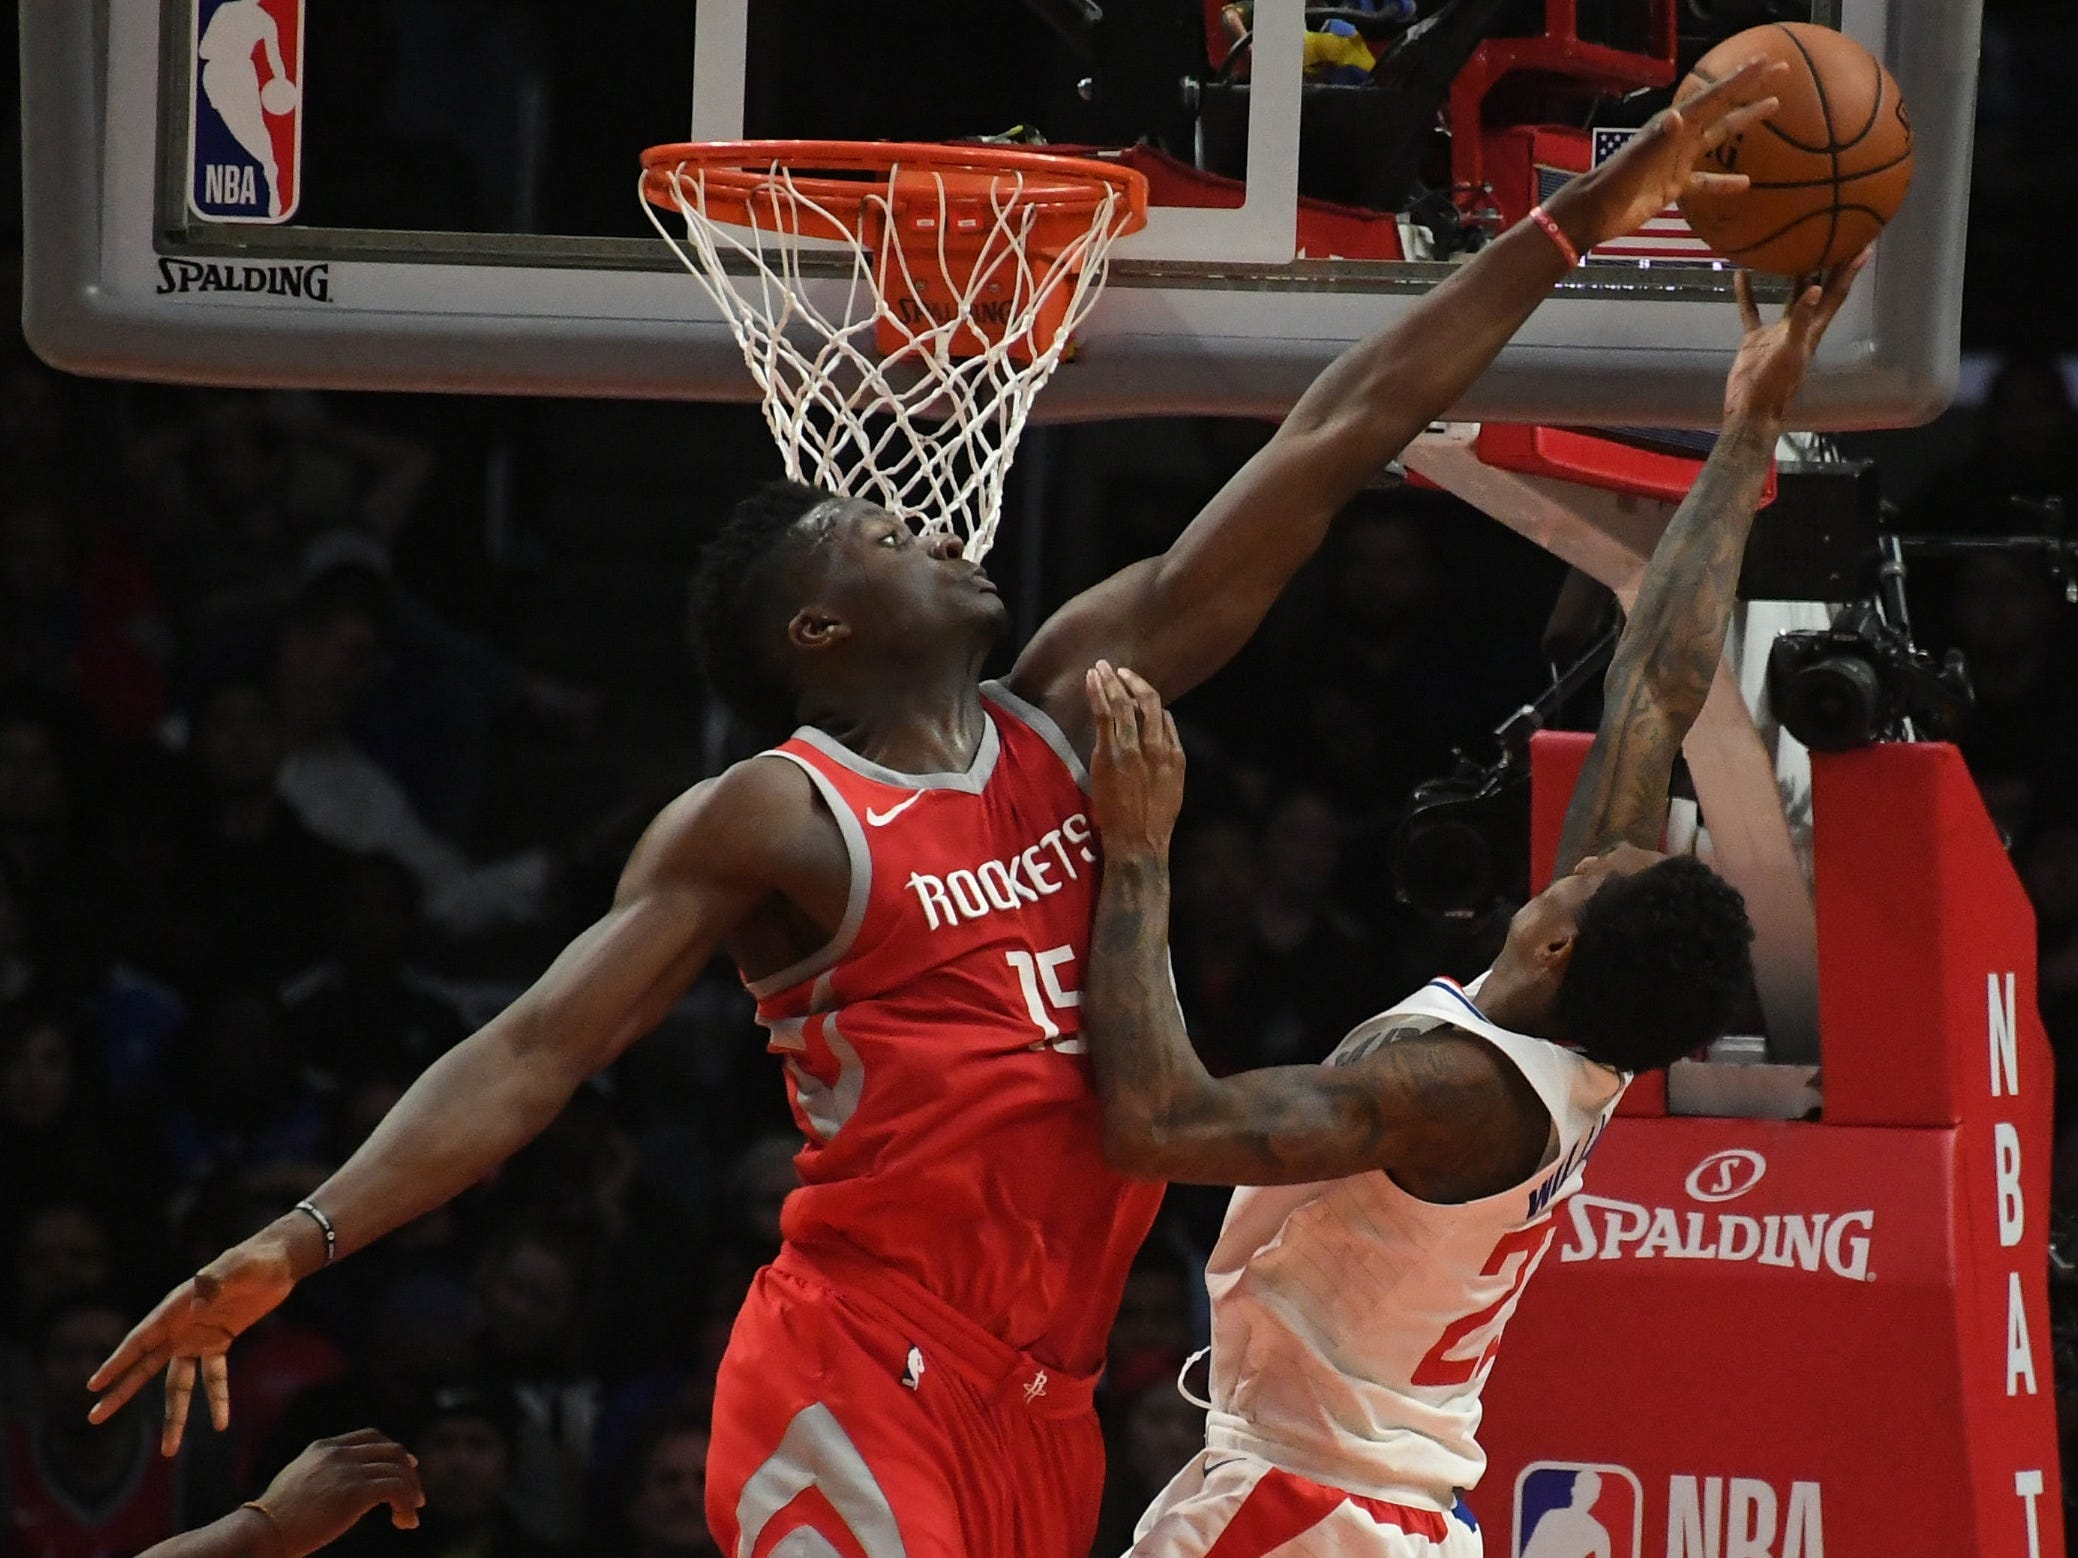 Clint Capela, Houston Rockets — 24 (born 5/18/1994)